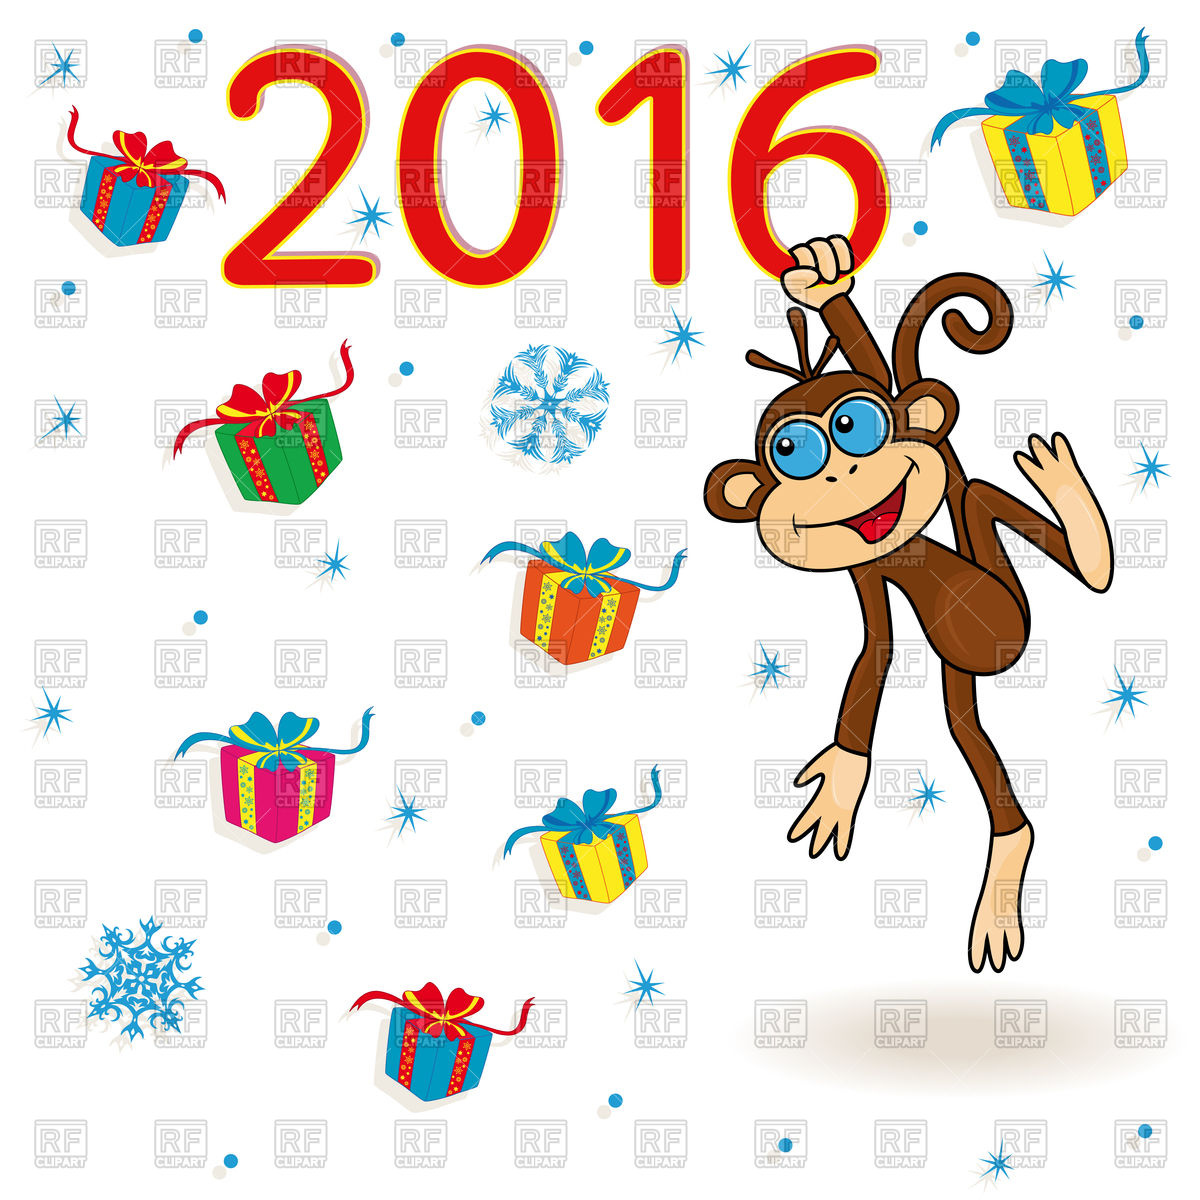 hight resolution of 1200x1200 new year 2016 greeting card with cute monkey royalty free vector